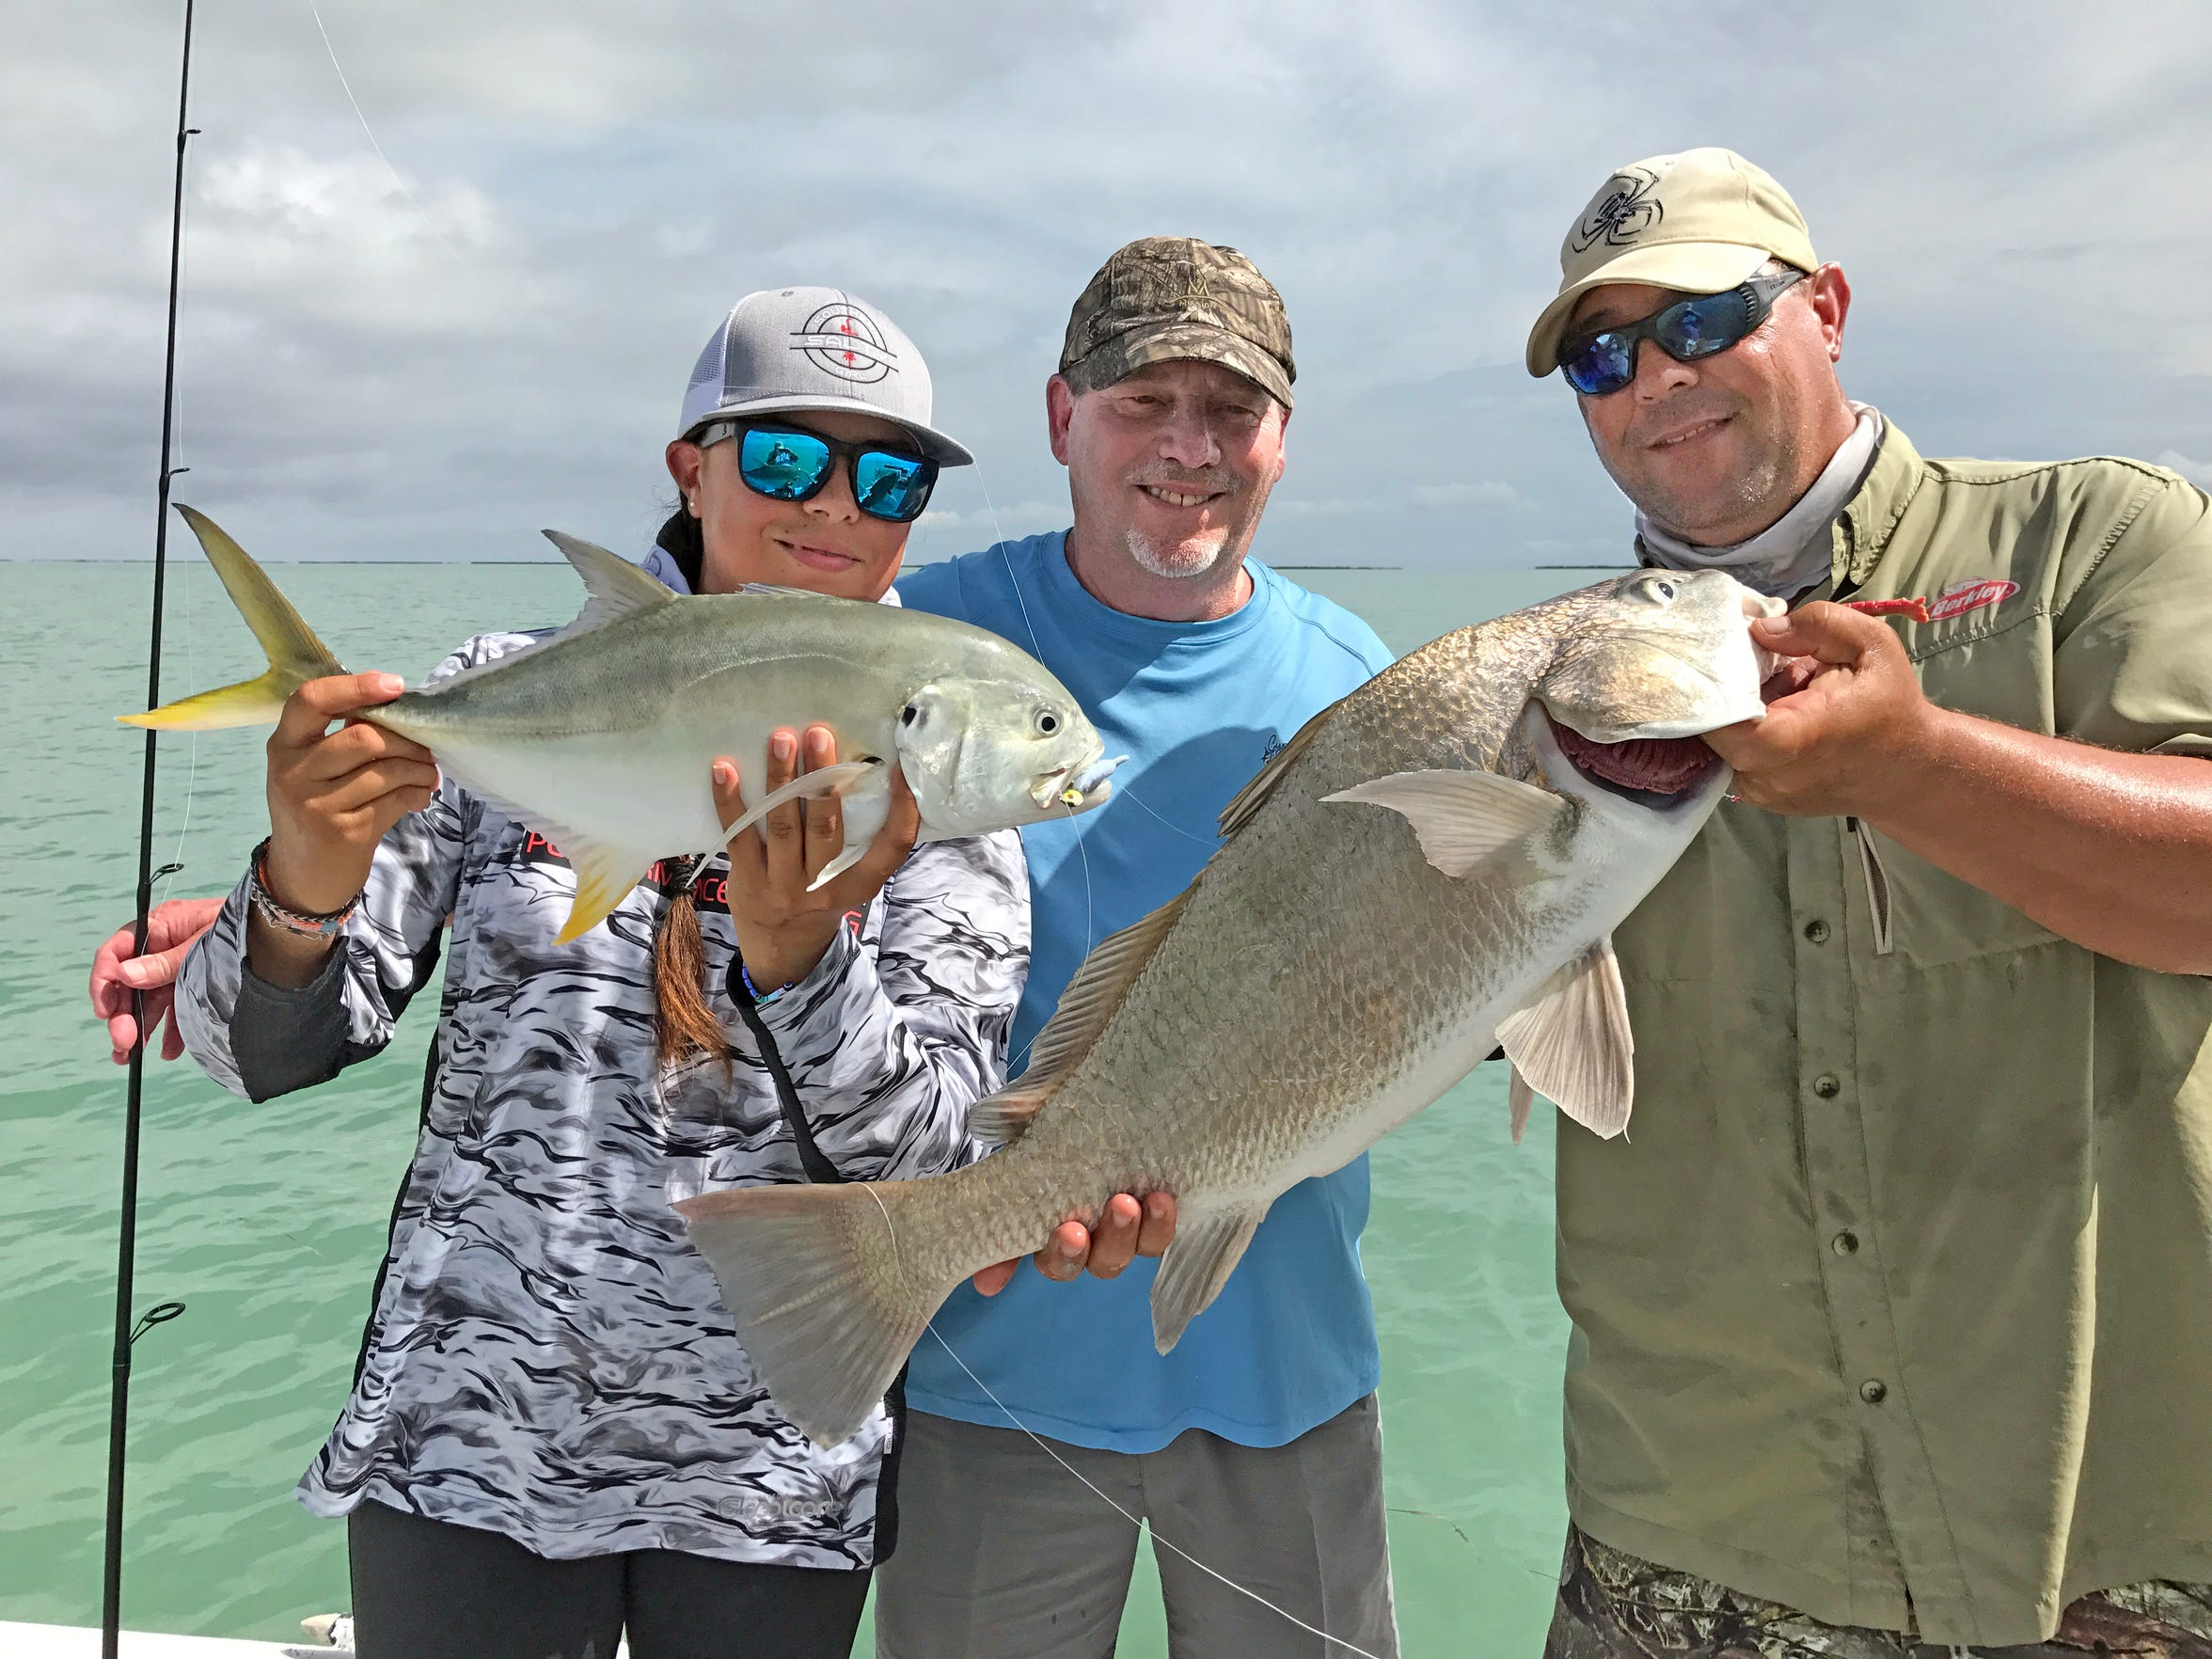 Mike Mahl found several schools of black drum in a clear tide.